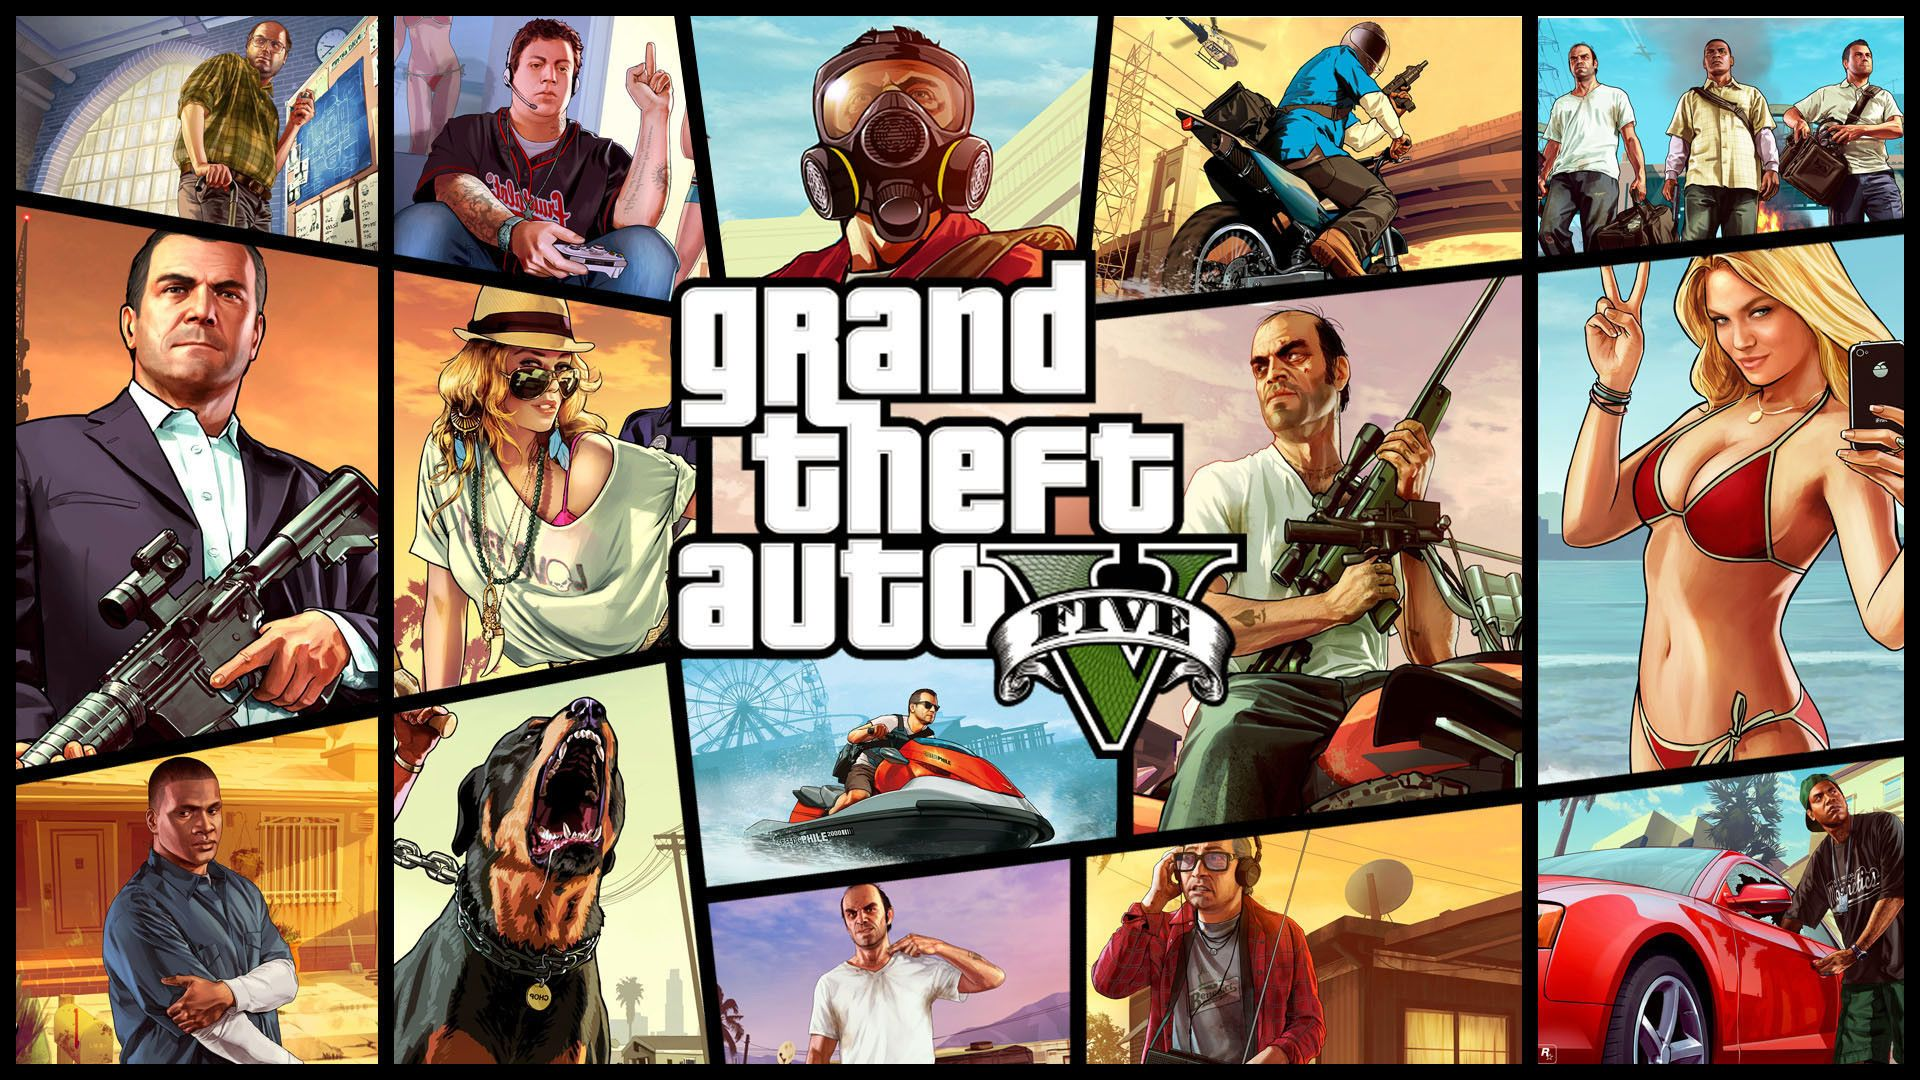 Grand Theft Auto V cover art. Virtual background to use on Zoom, Microsoft Teams, Skype, Google Meet, WebEx or any other compatible app.